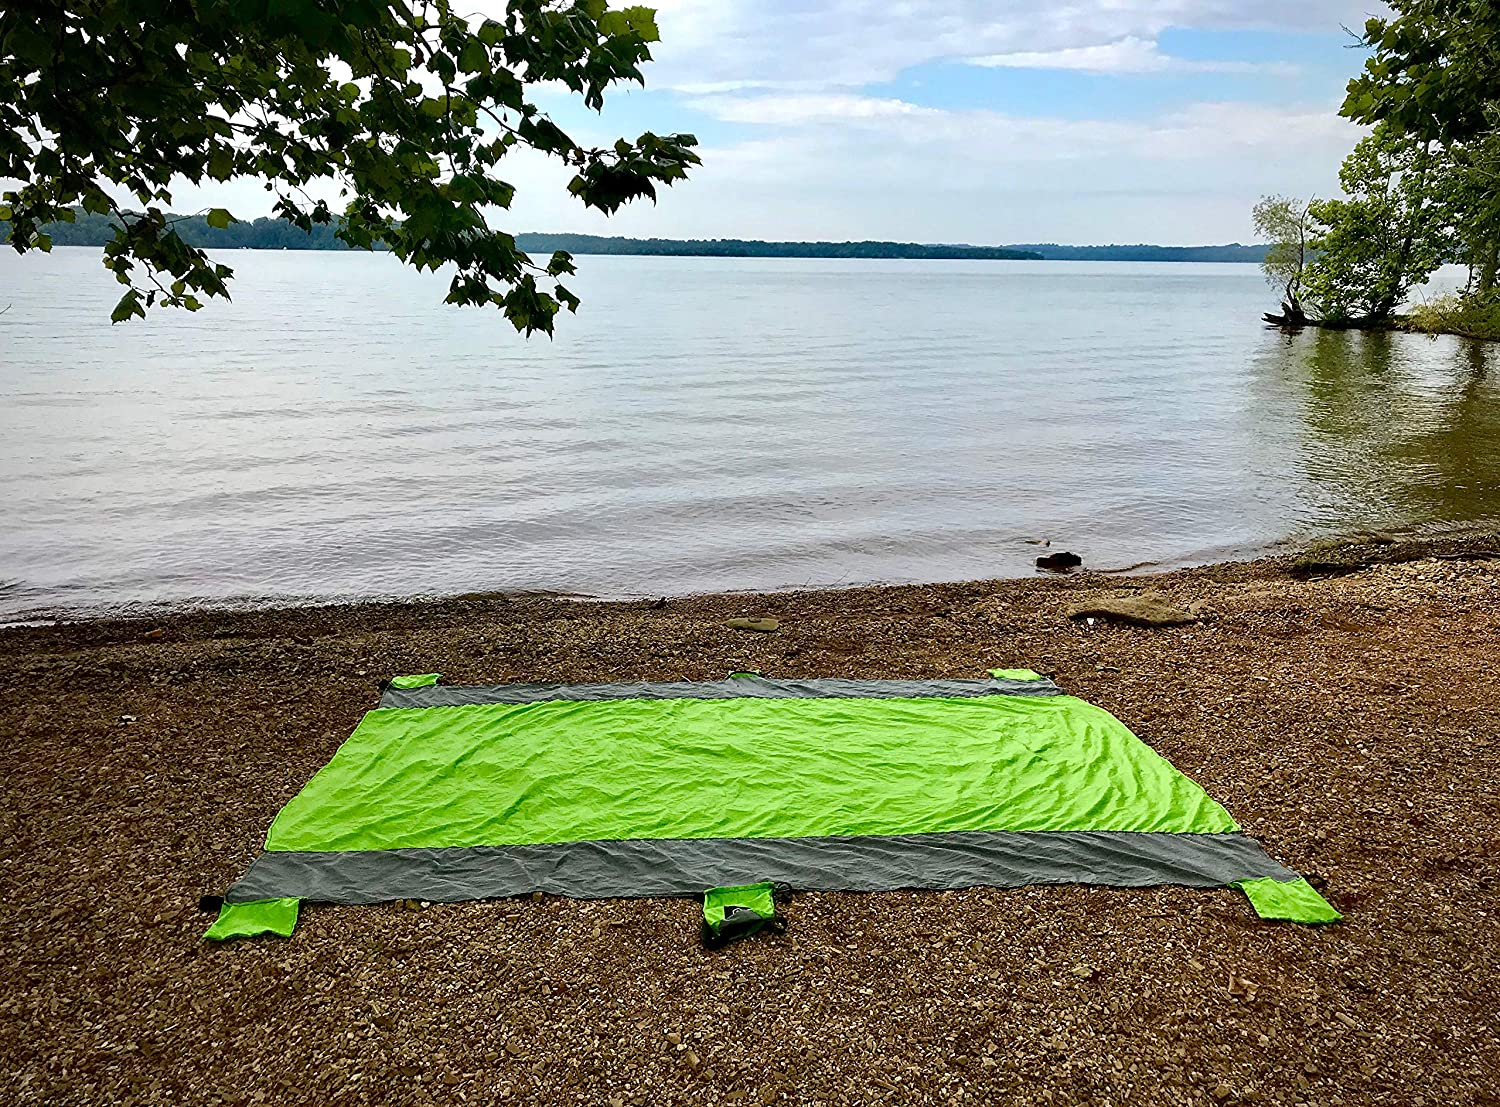 Oversized 9X 7 for 7 Adults Quick Drying 8 Corner Stakes 4 Corner Pockets 1 Zippered Storage Pocket 2 Metal Caribiners Outdoor Blanket Camping Blanket Picnic Blanket Beach Blanket Sandproof